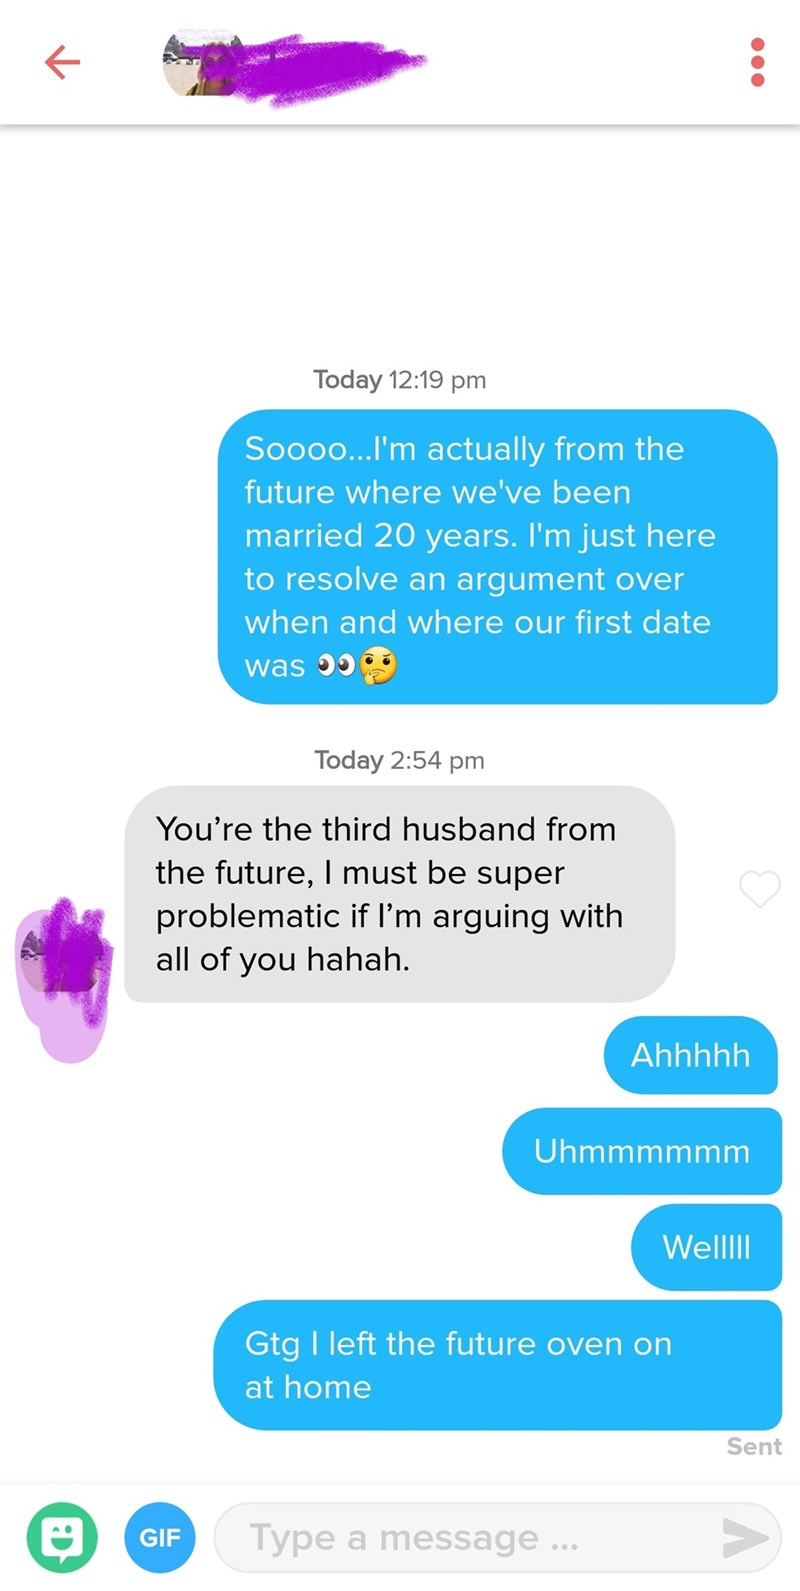 tinder post of a guy claiming to be a girls future husband